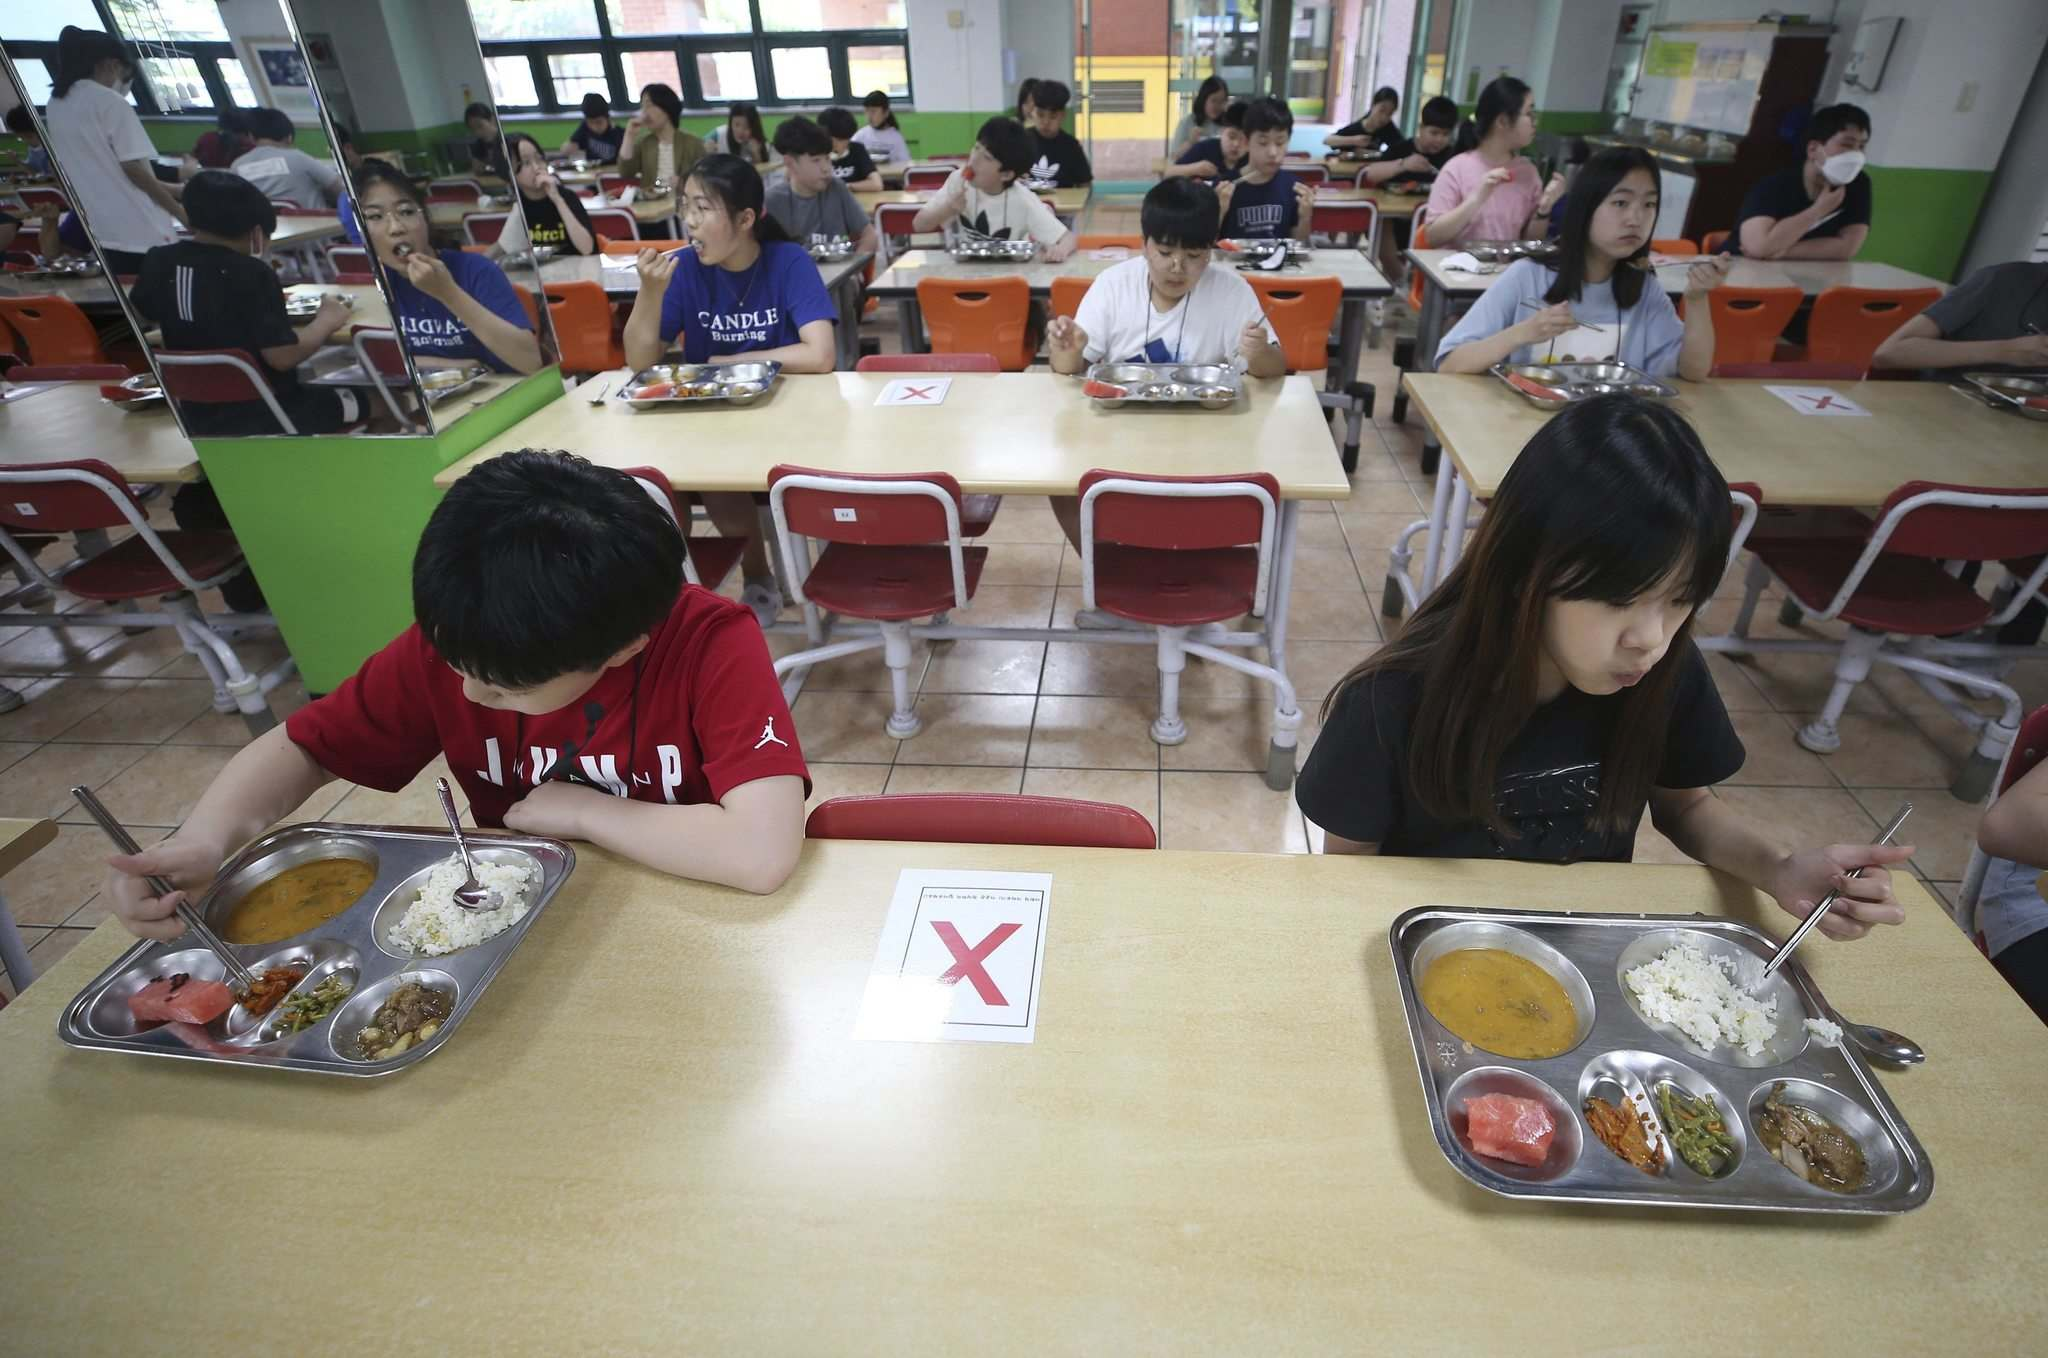 Elementary school students eat lunch while keeping their distance from each other at the cafeteria of their school in Gwangju, South Korea, last month. (Cheon Jeong-in / Associated Press files)